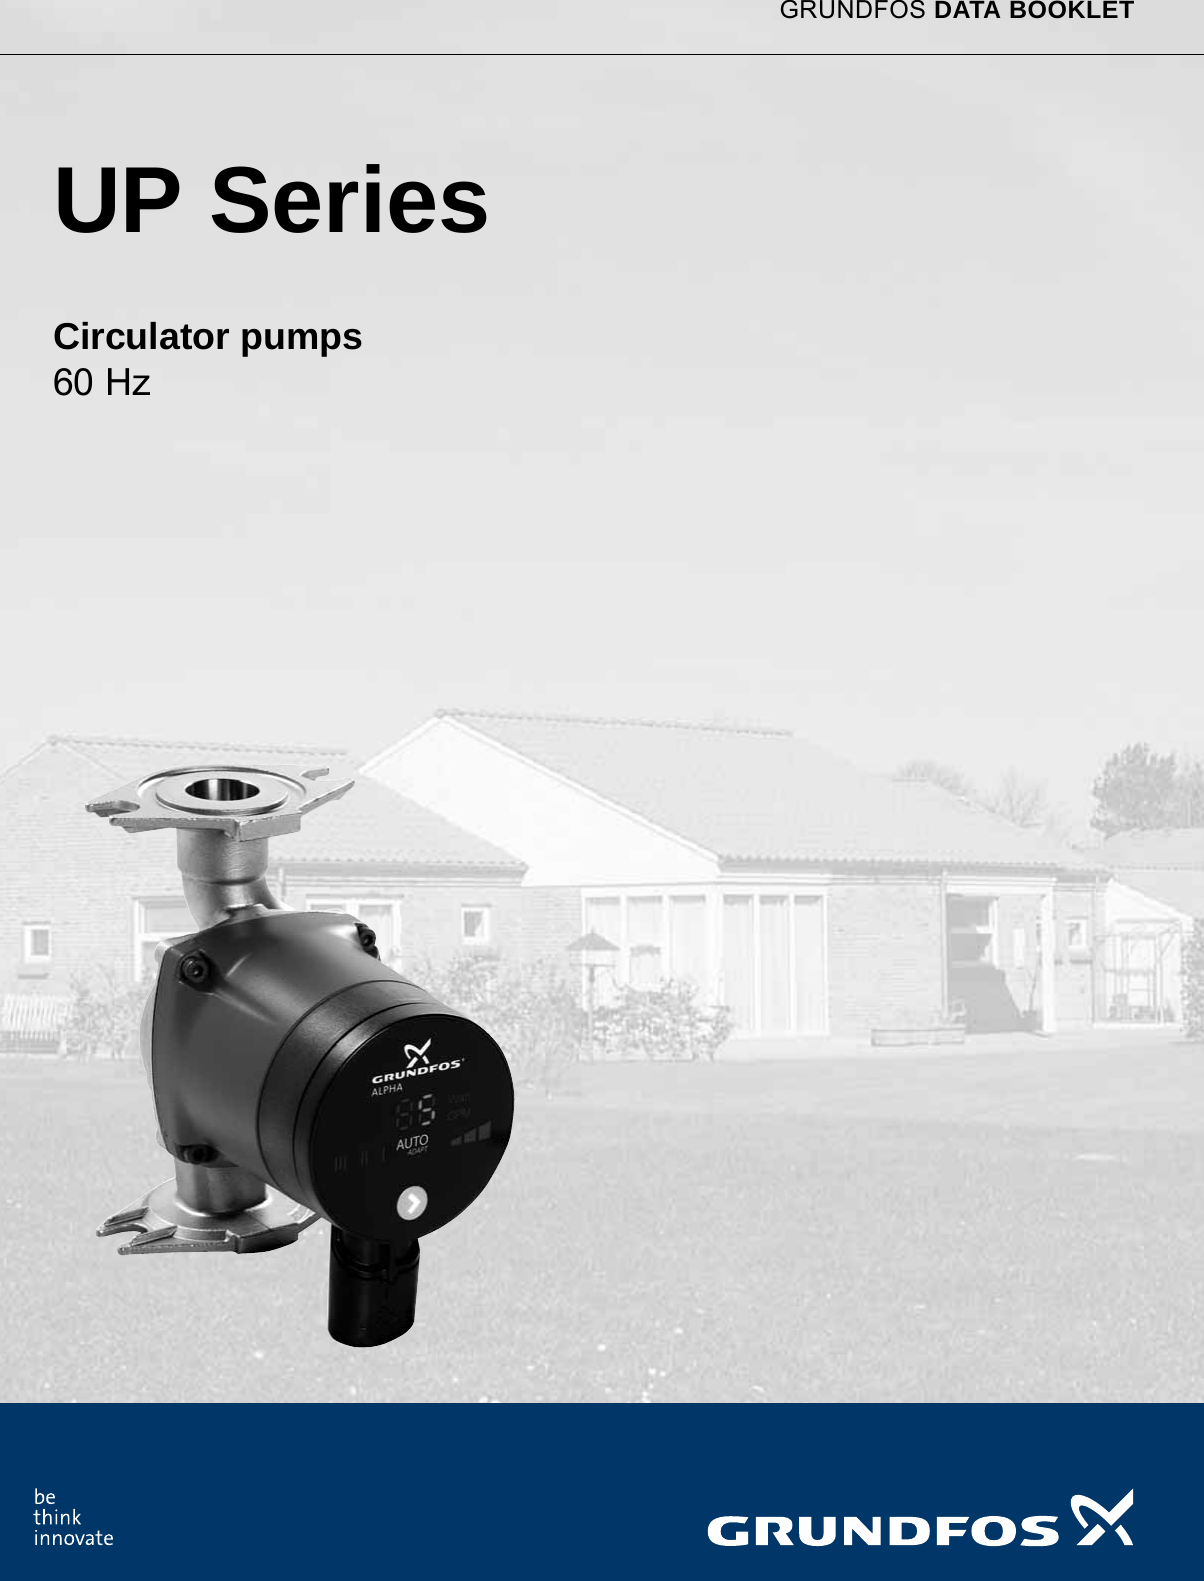 grundfos up 10-16 pm manual